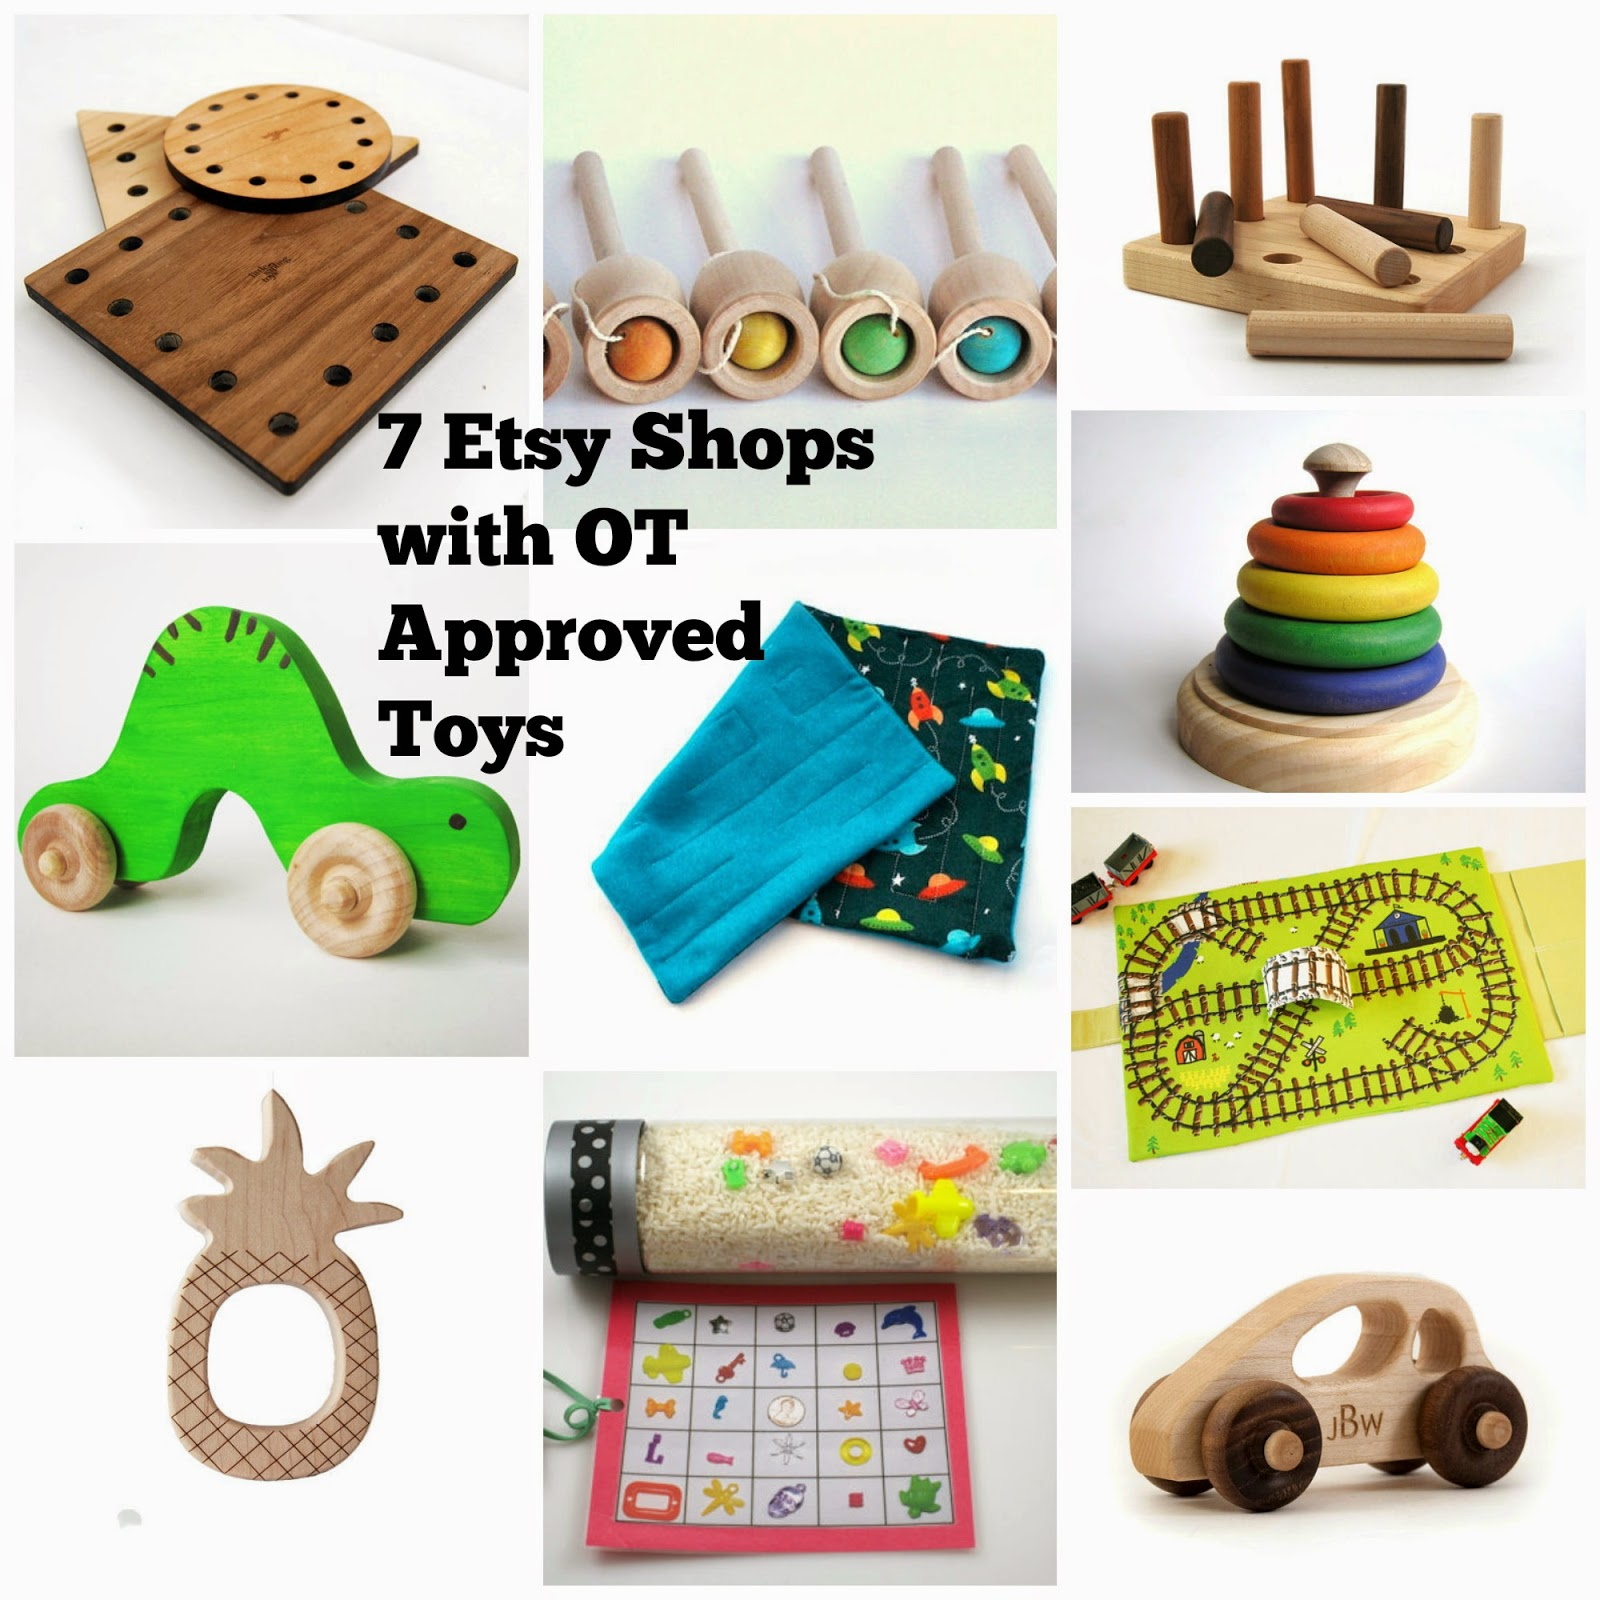 Sorry, that Occupational therapy toys for adults